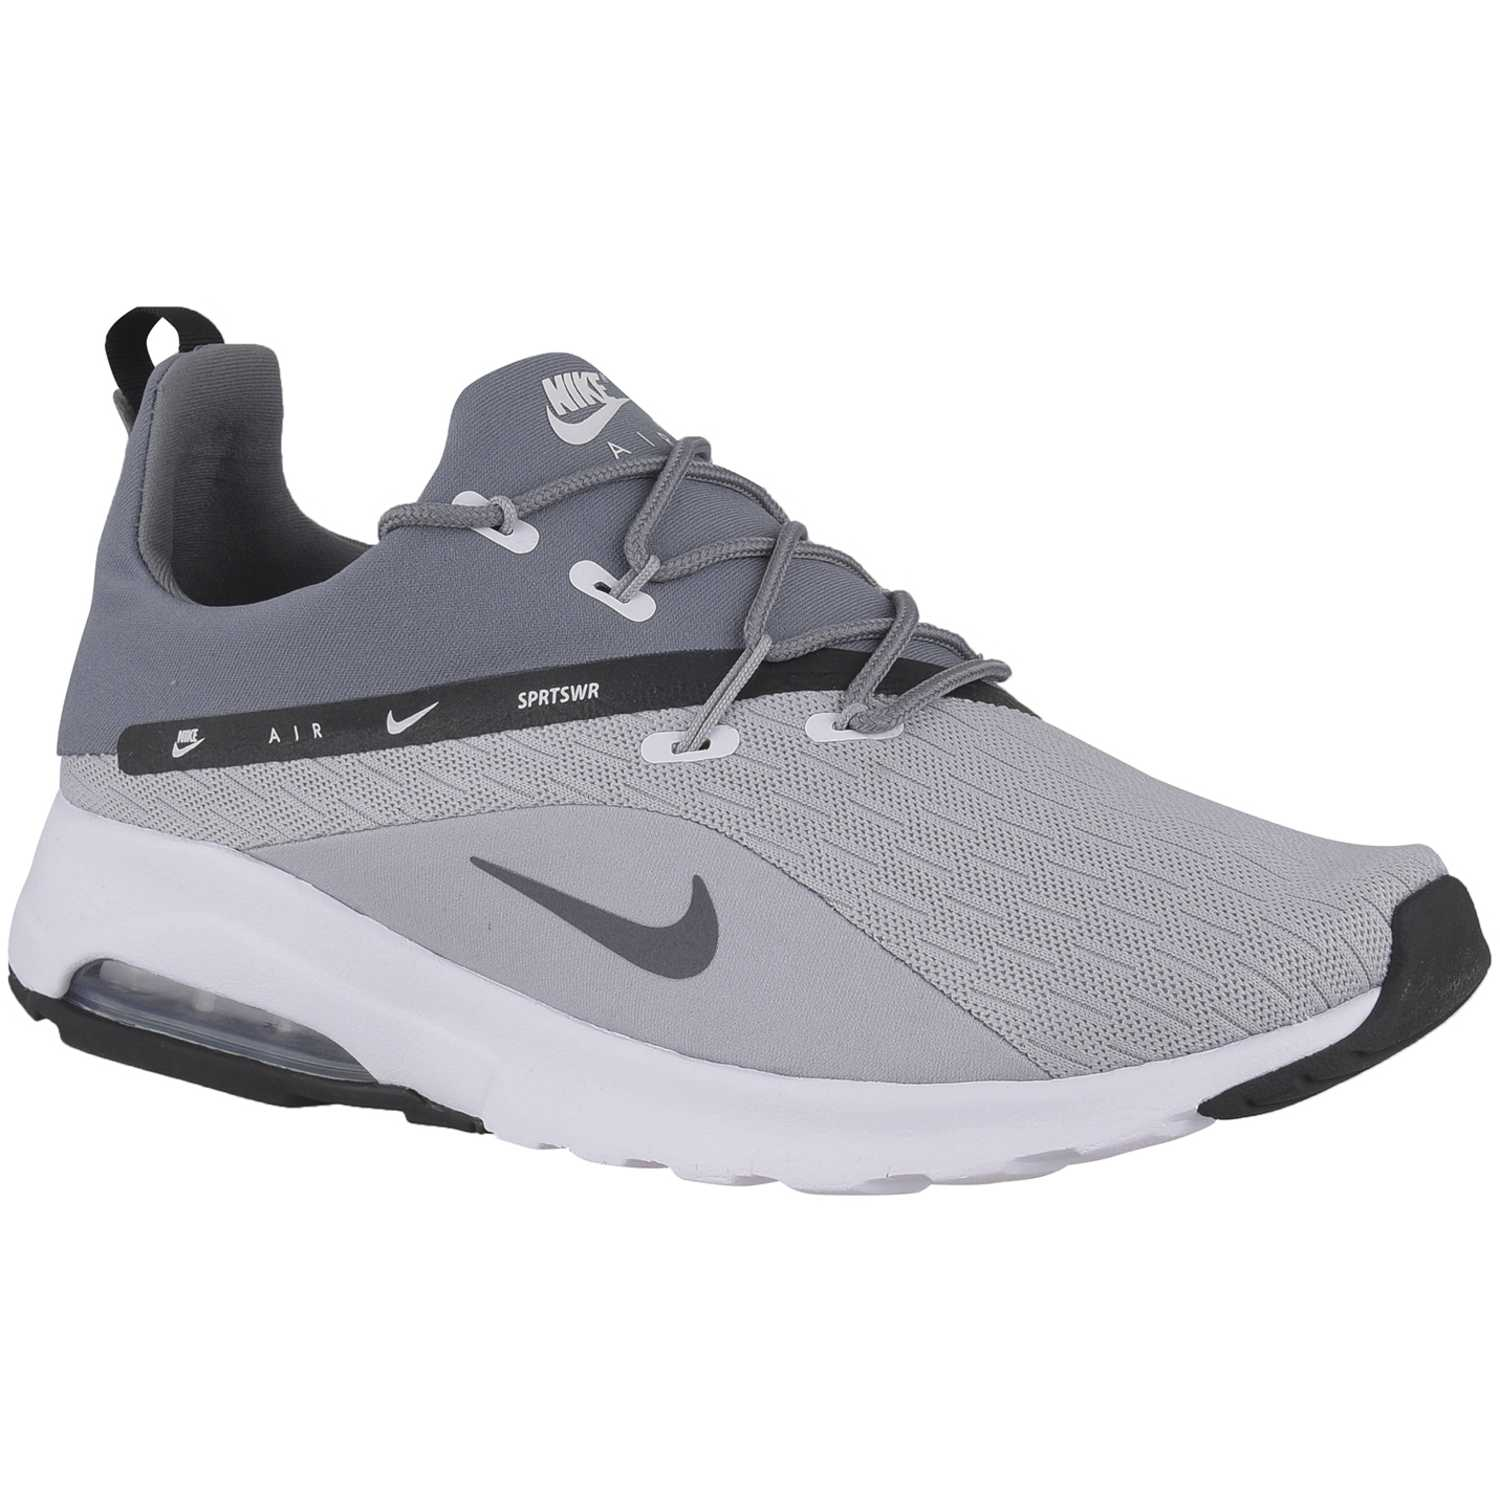 buy popular 5c34e a282e Zapatilla de Hombre Nike Gris   plomo air max motion racer 2